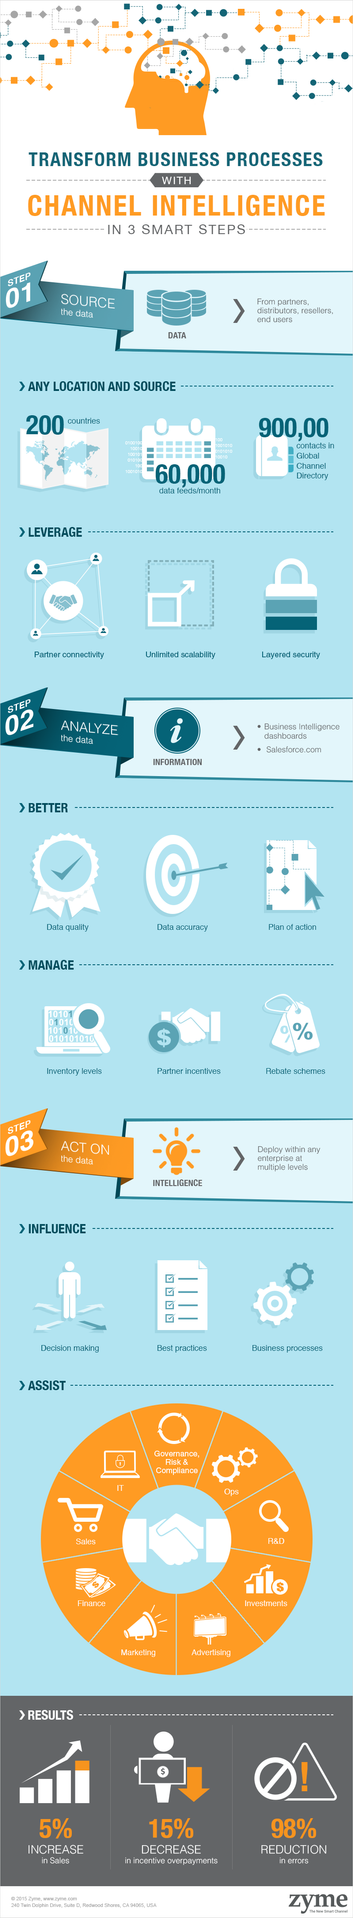 Zyme_infogrphic_CI_012115_02.png